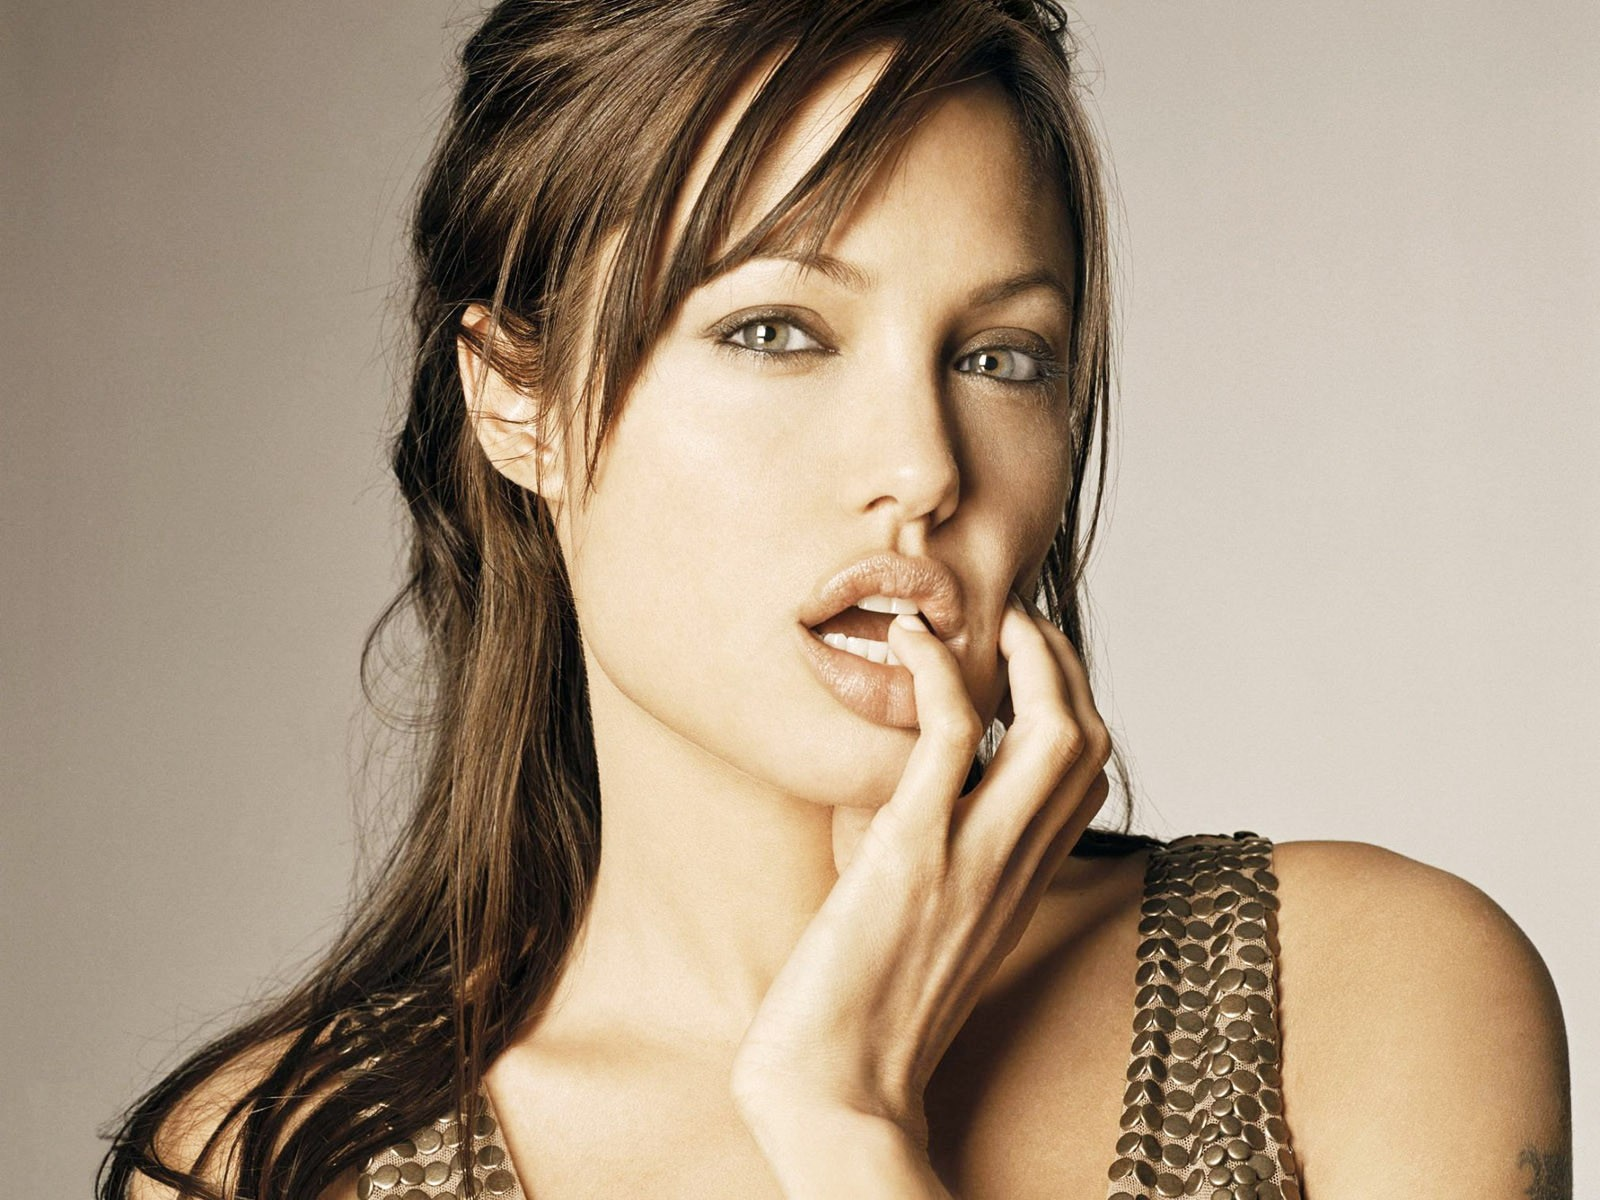 Angelina Jolie Finger In Mouth